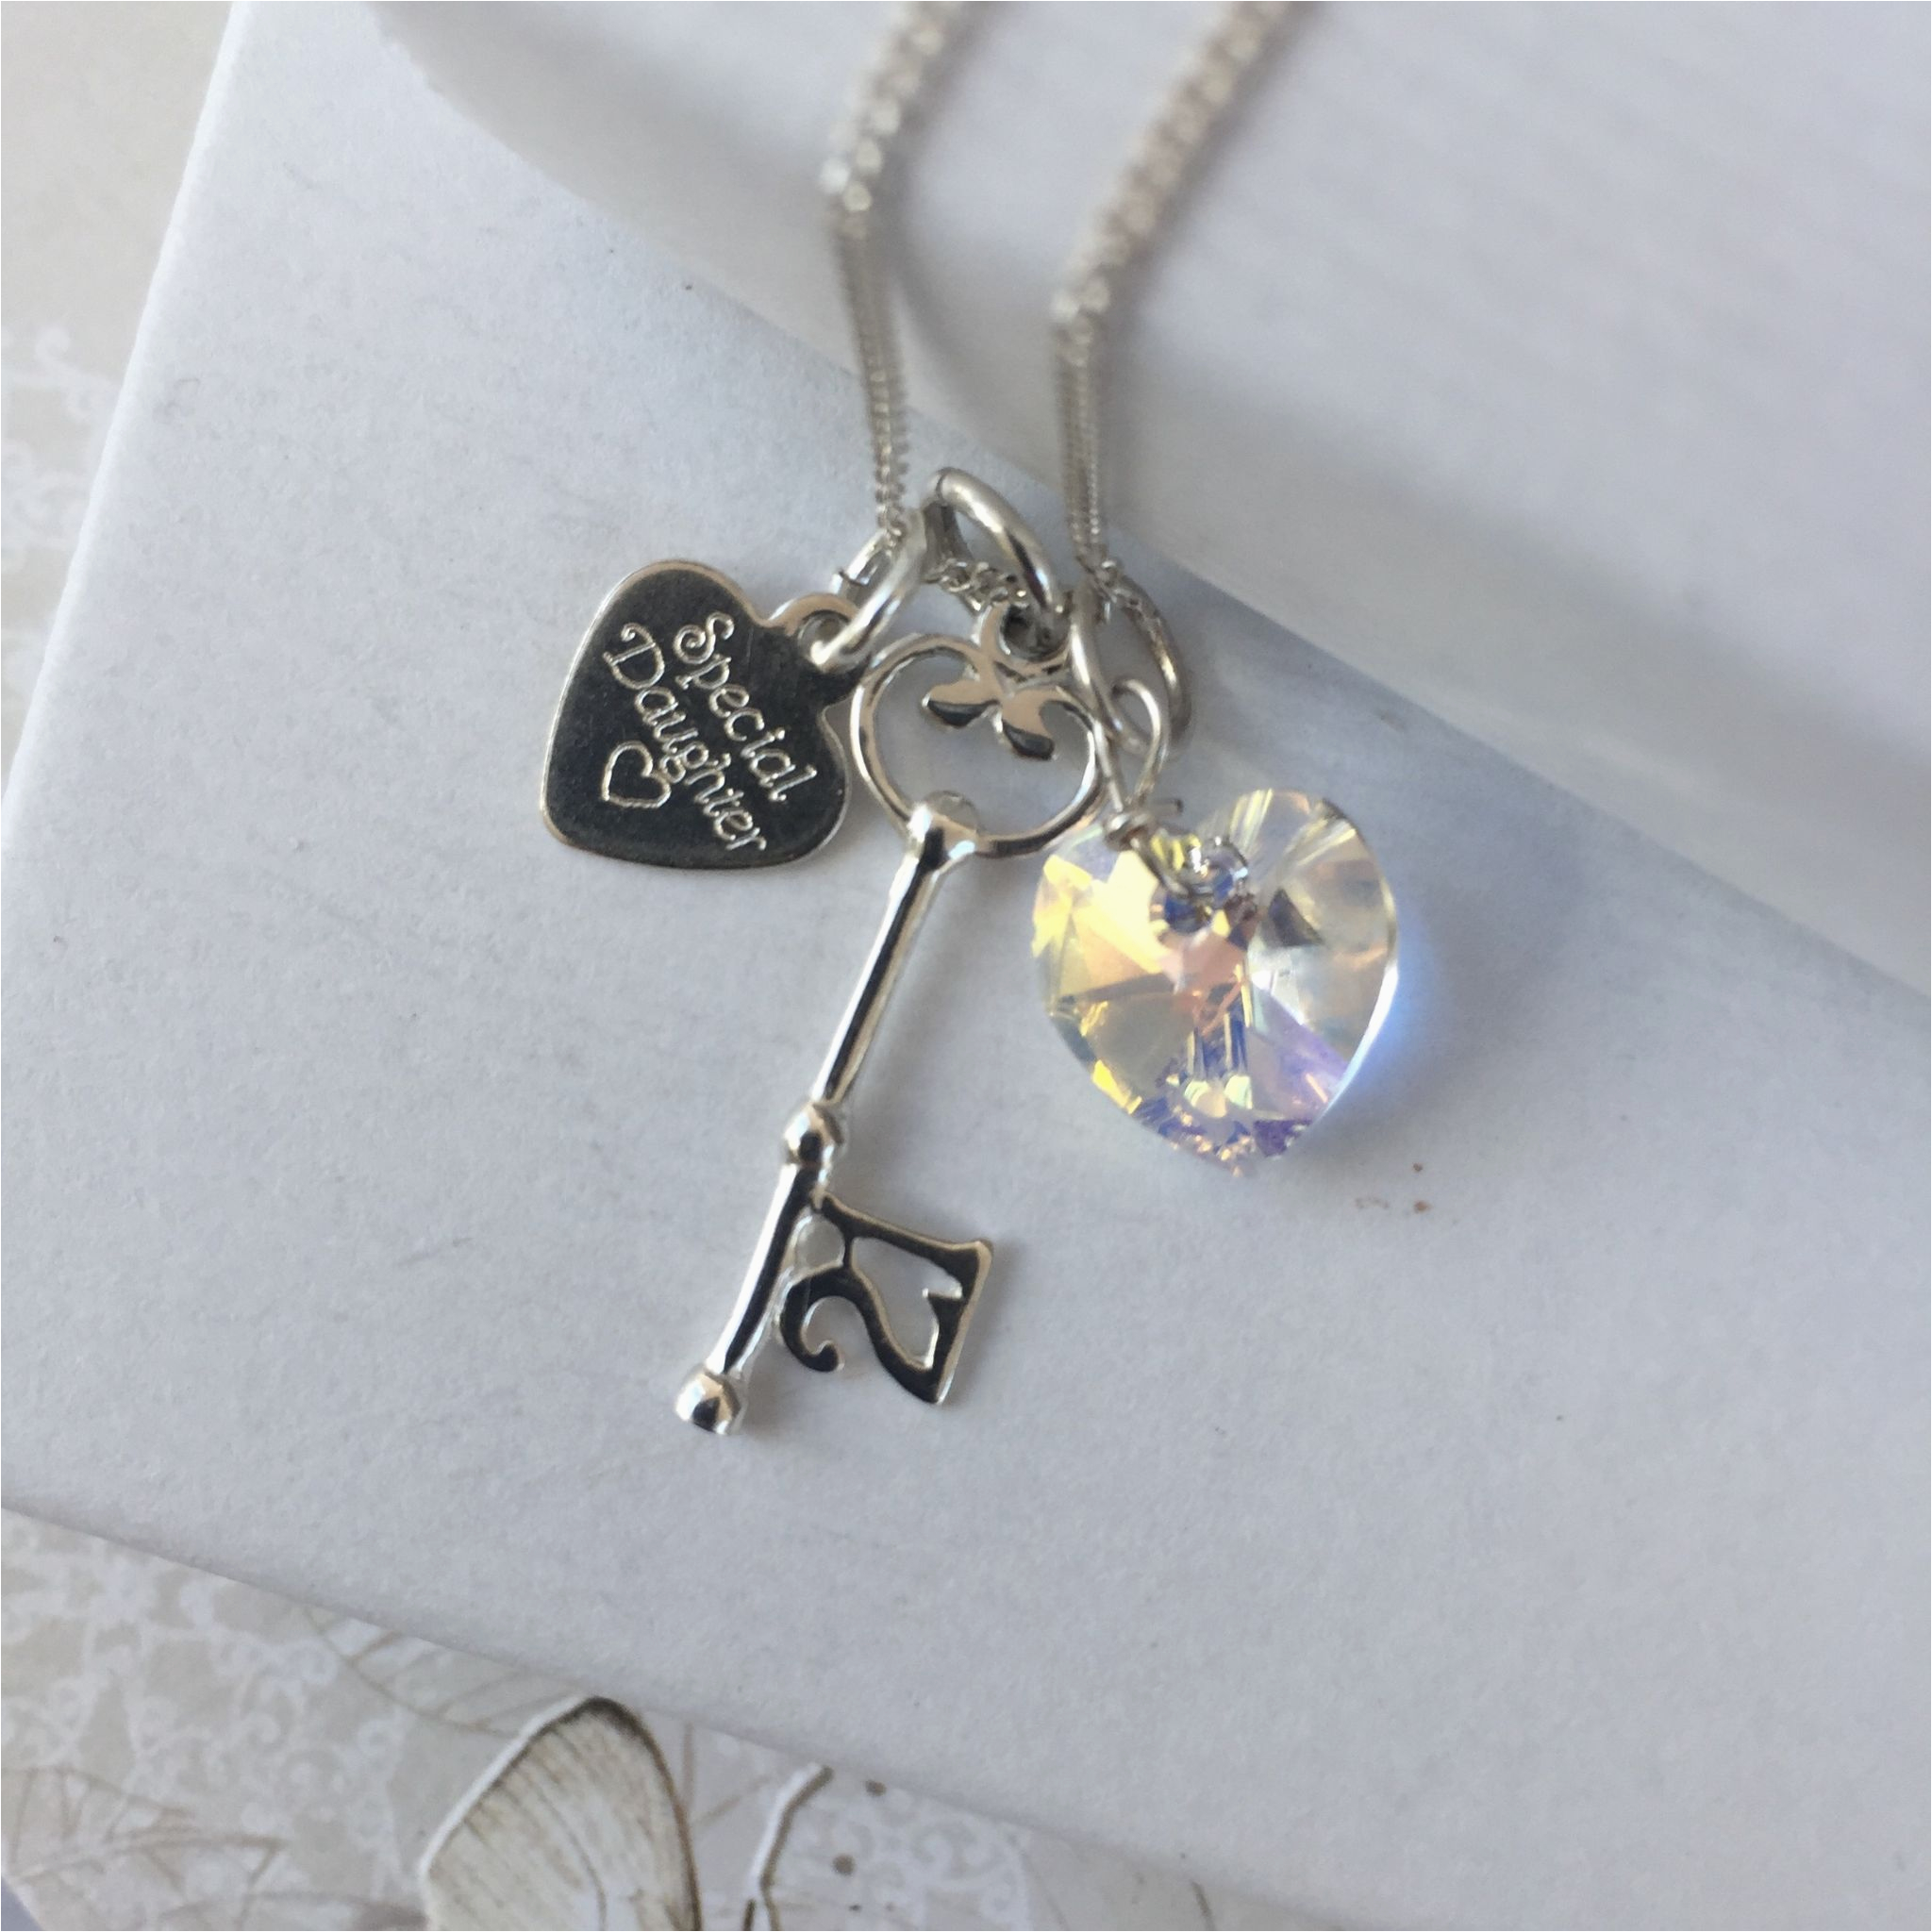 special 21st birthday gift necklace